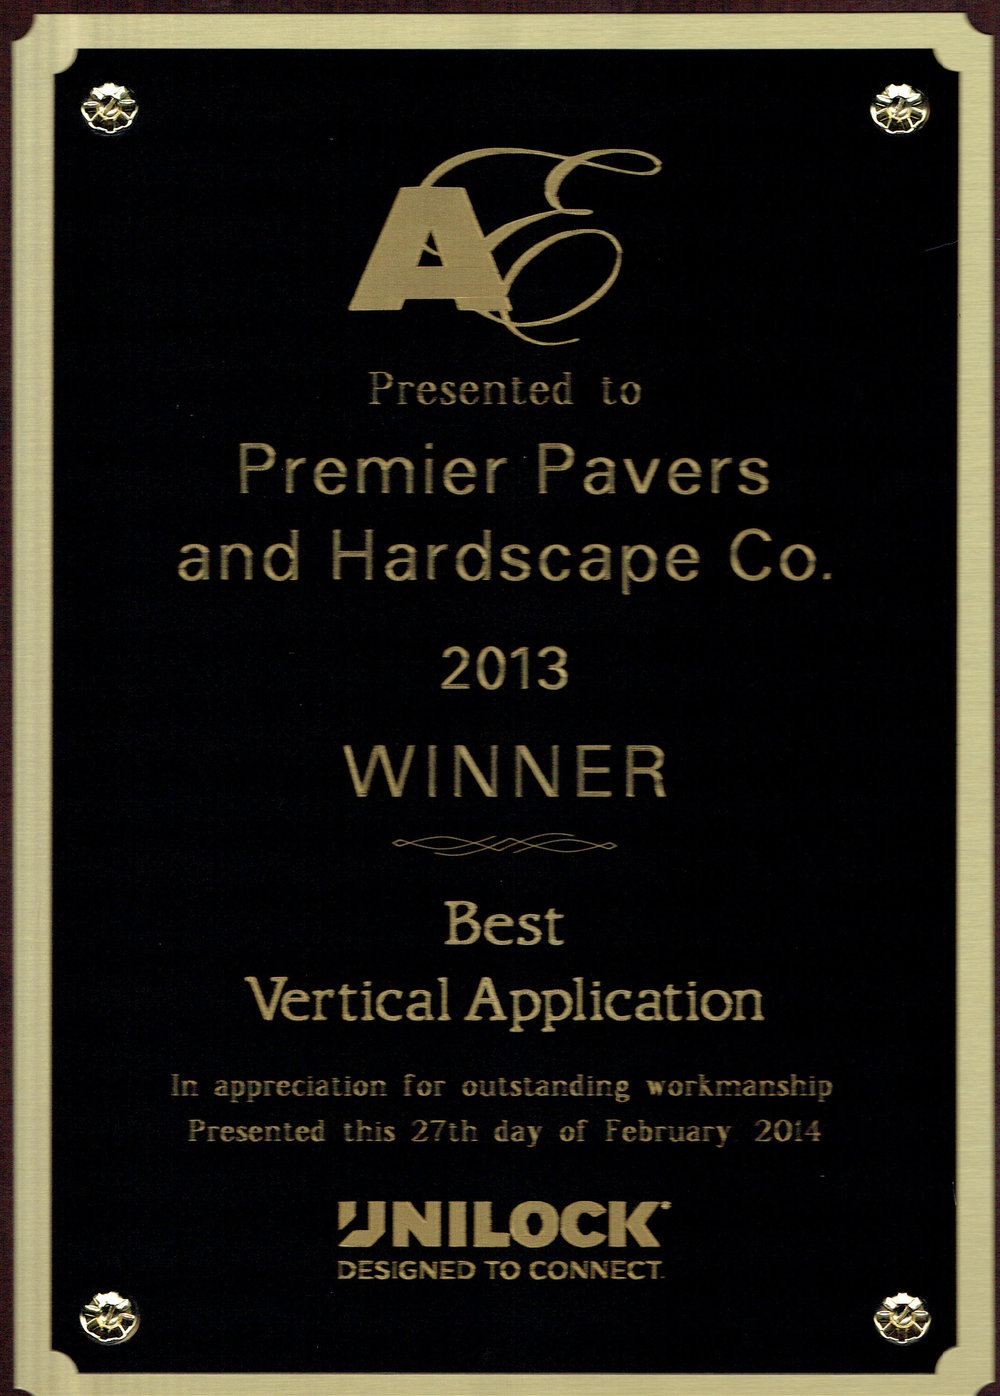 Lincoln MA landscaping company with Unilock award for best vertical application.